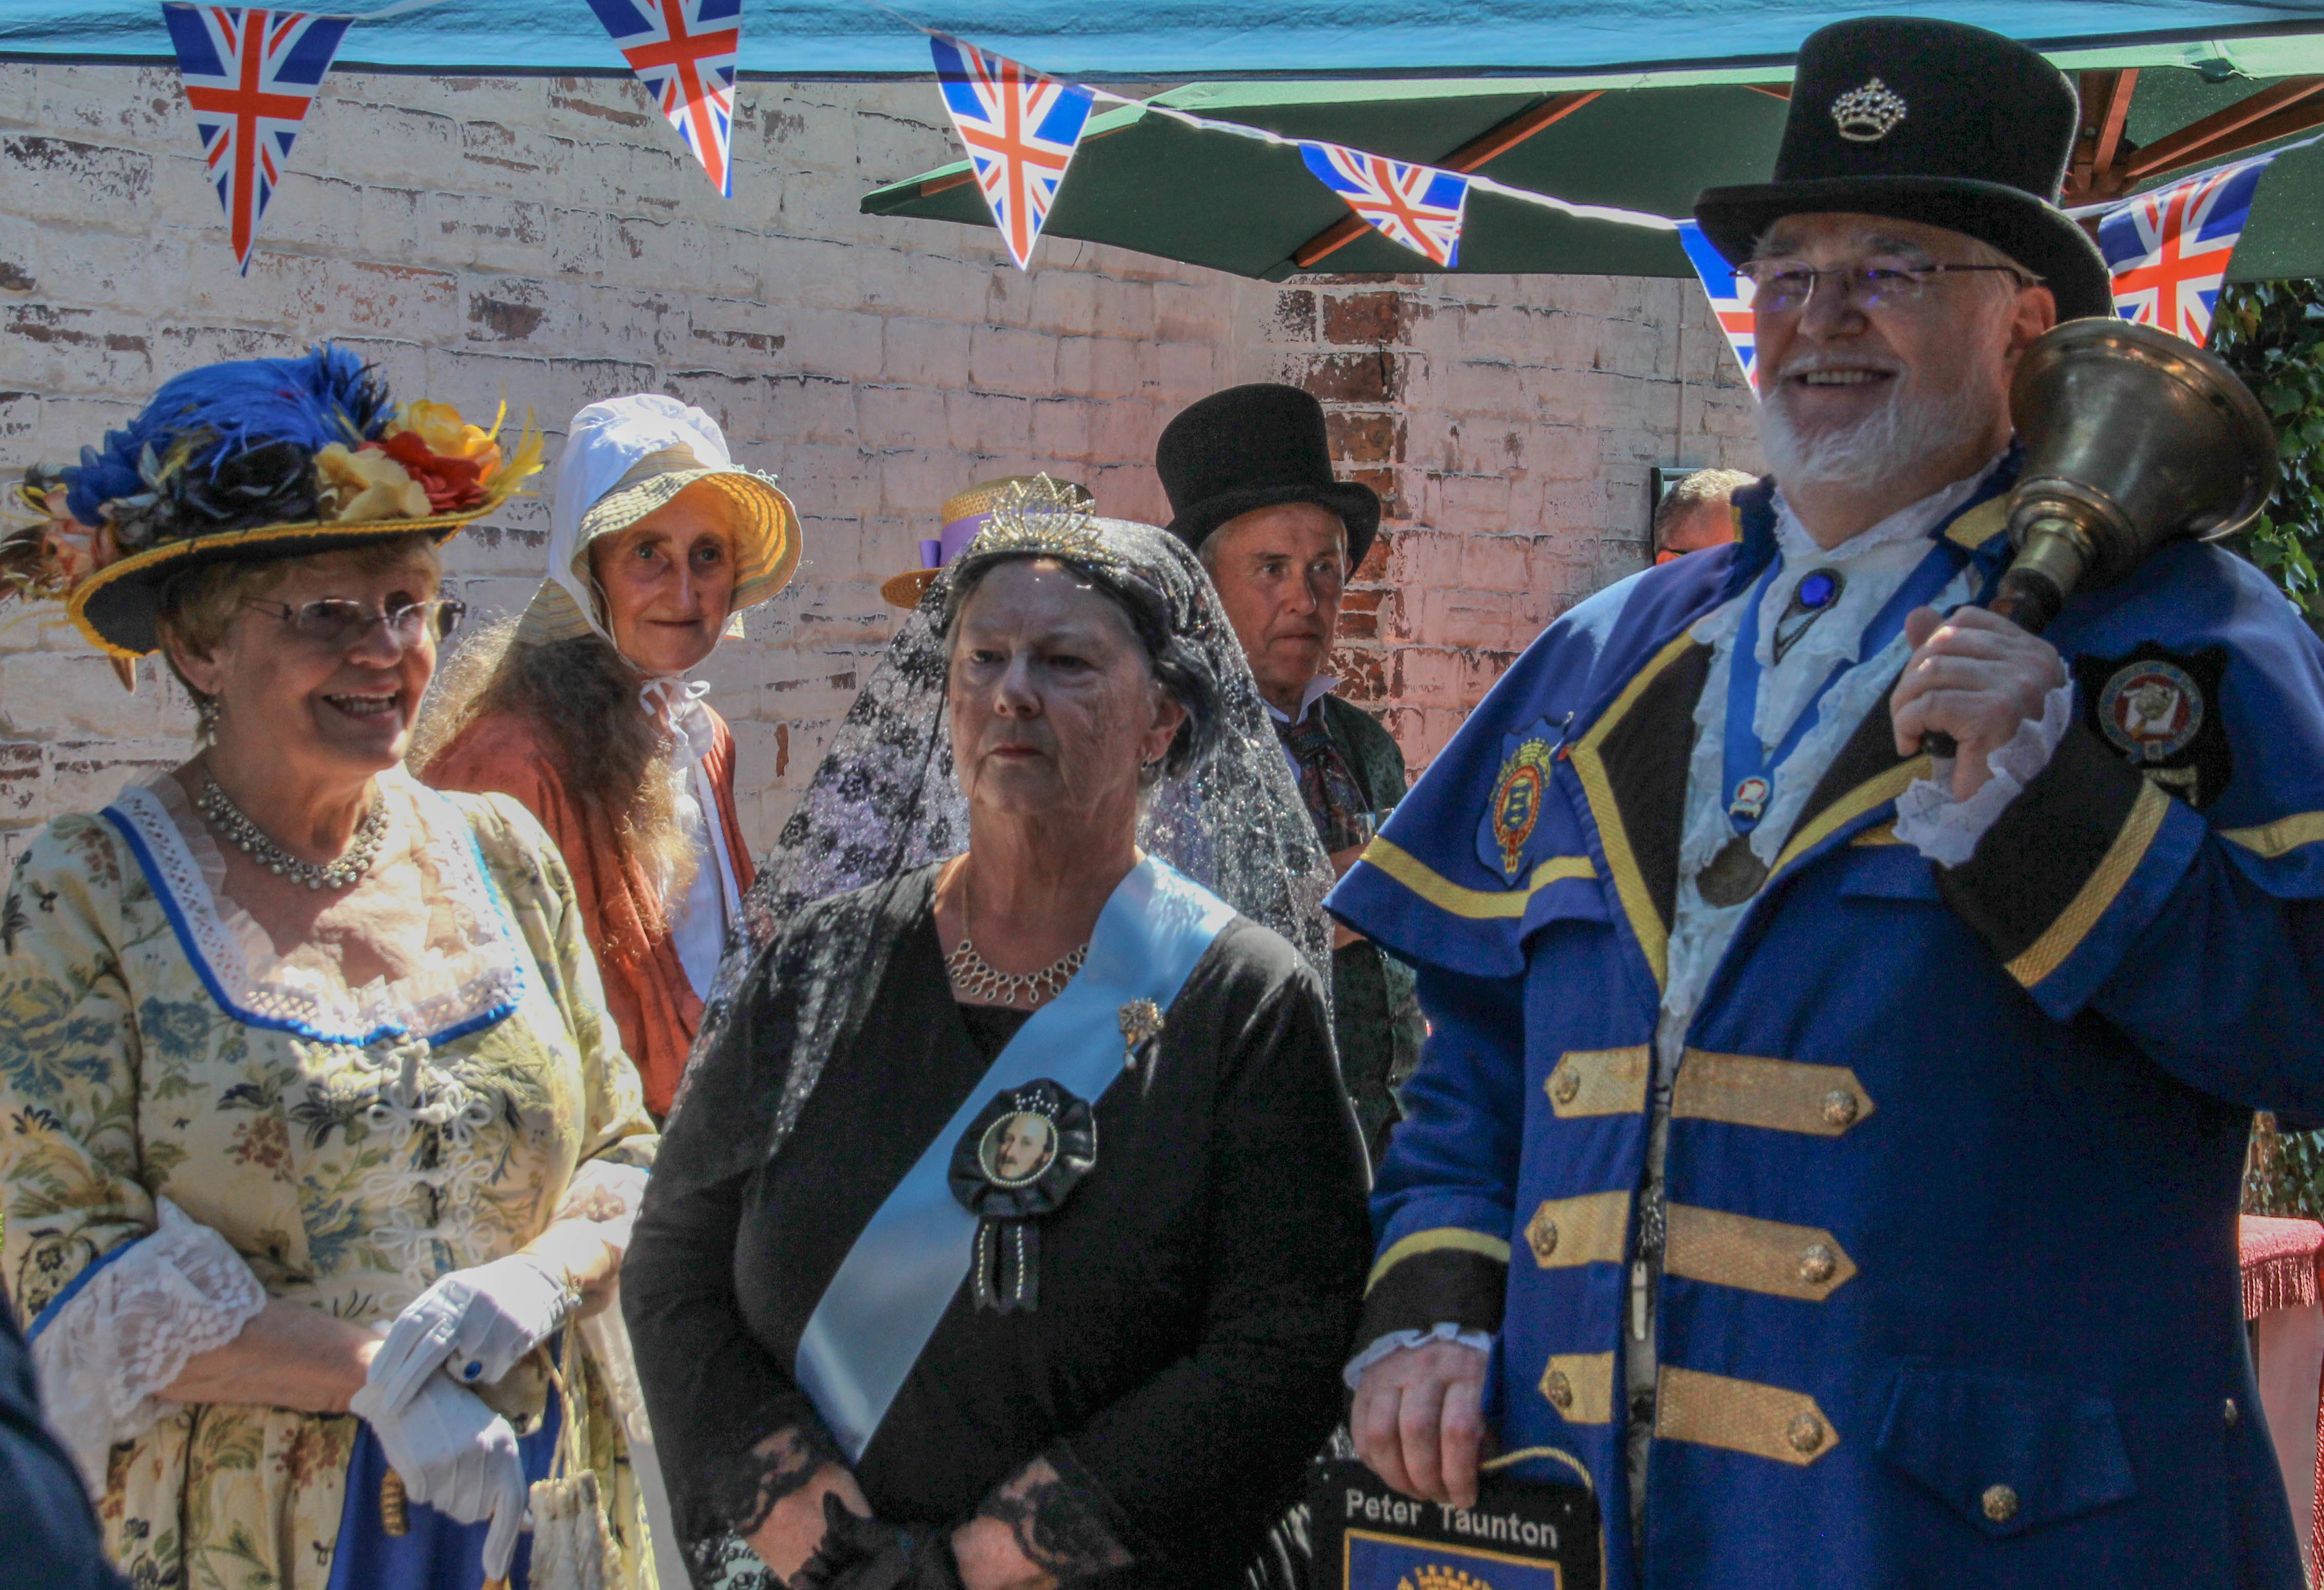 Queen Victoria and Town Crier